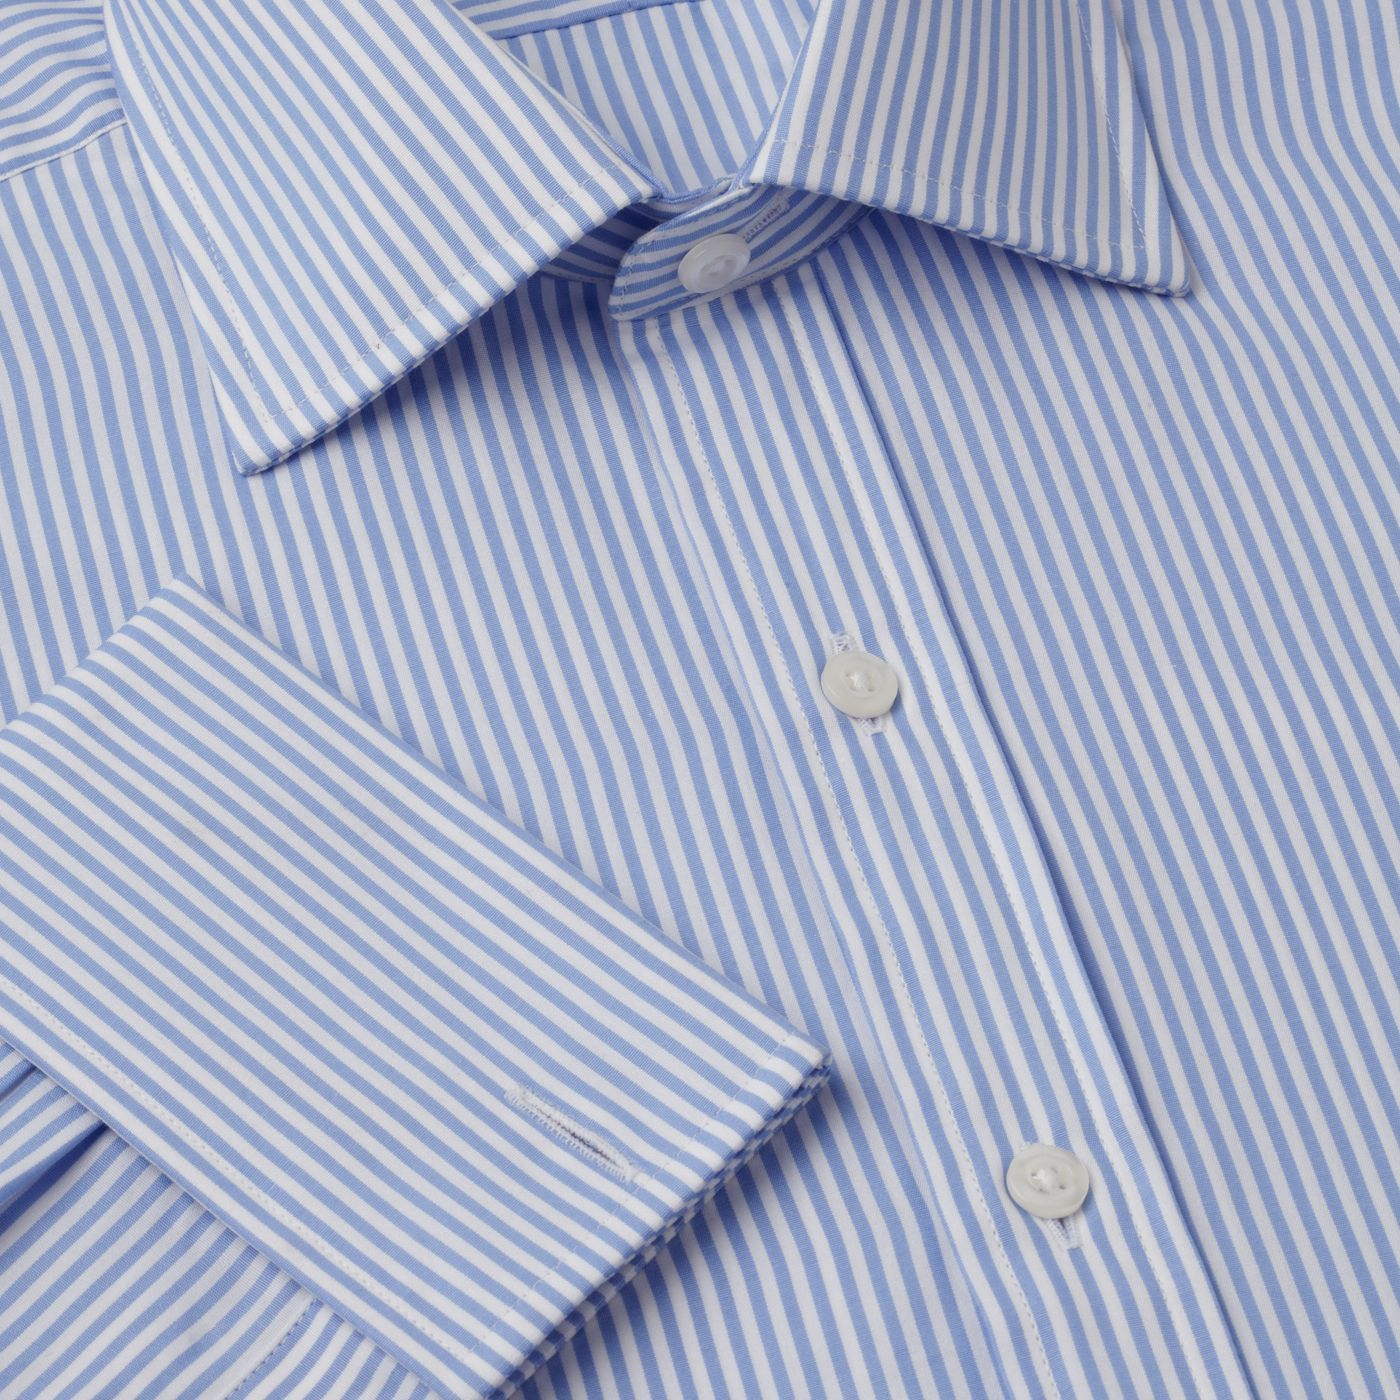 Bengal stripe Prince of Wales shirt